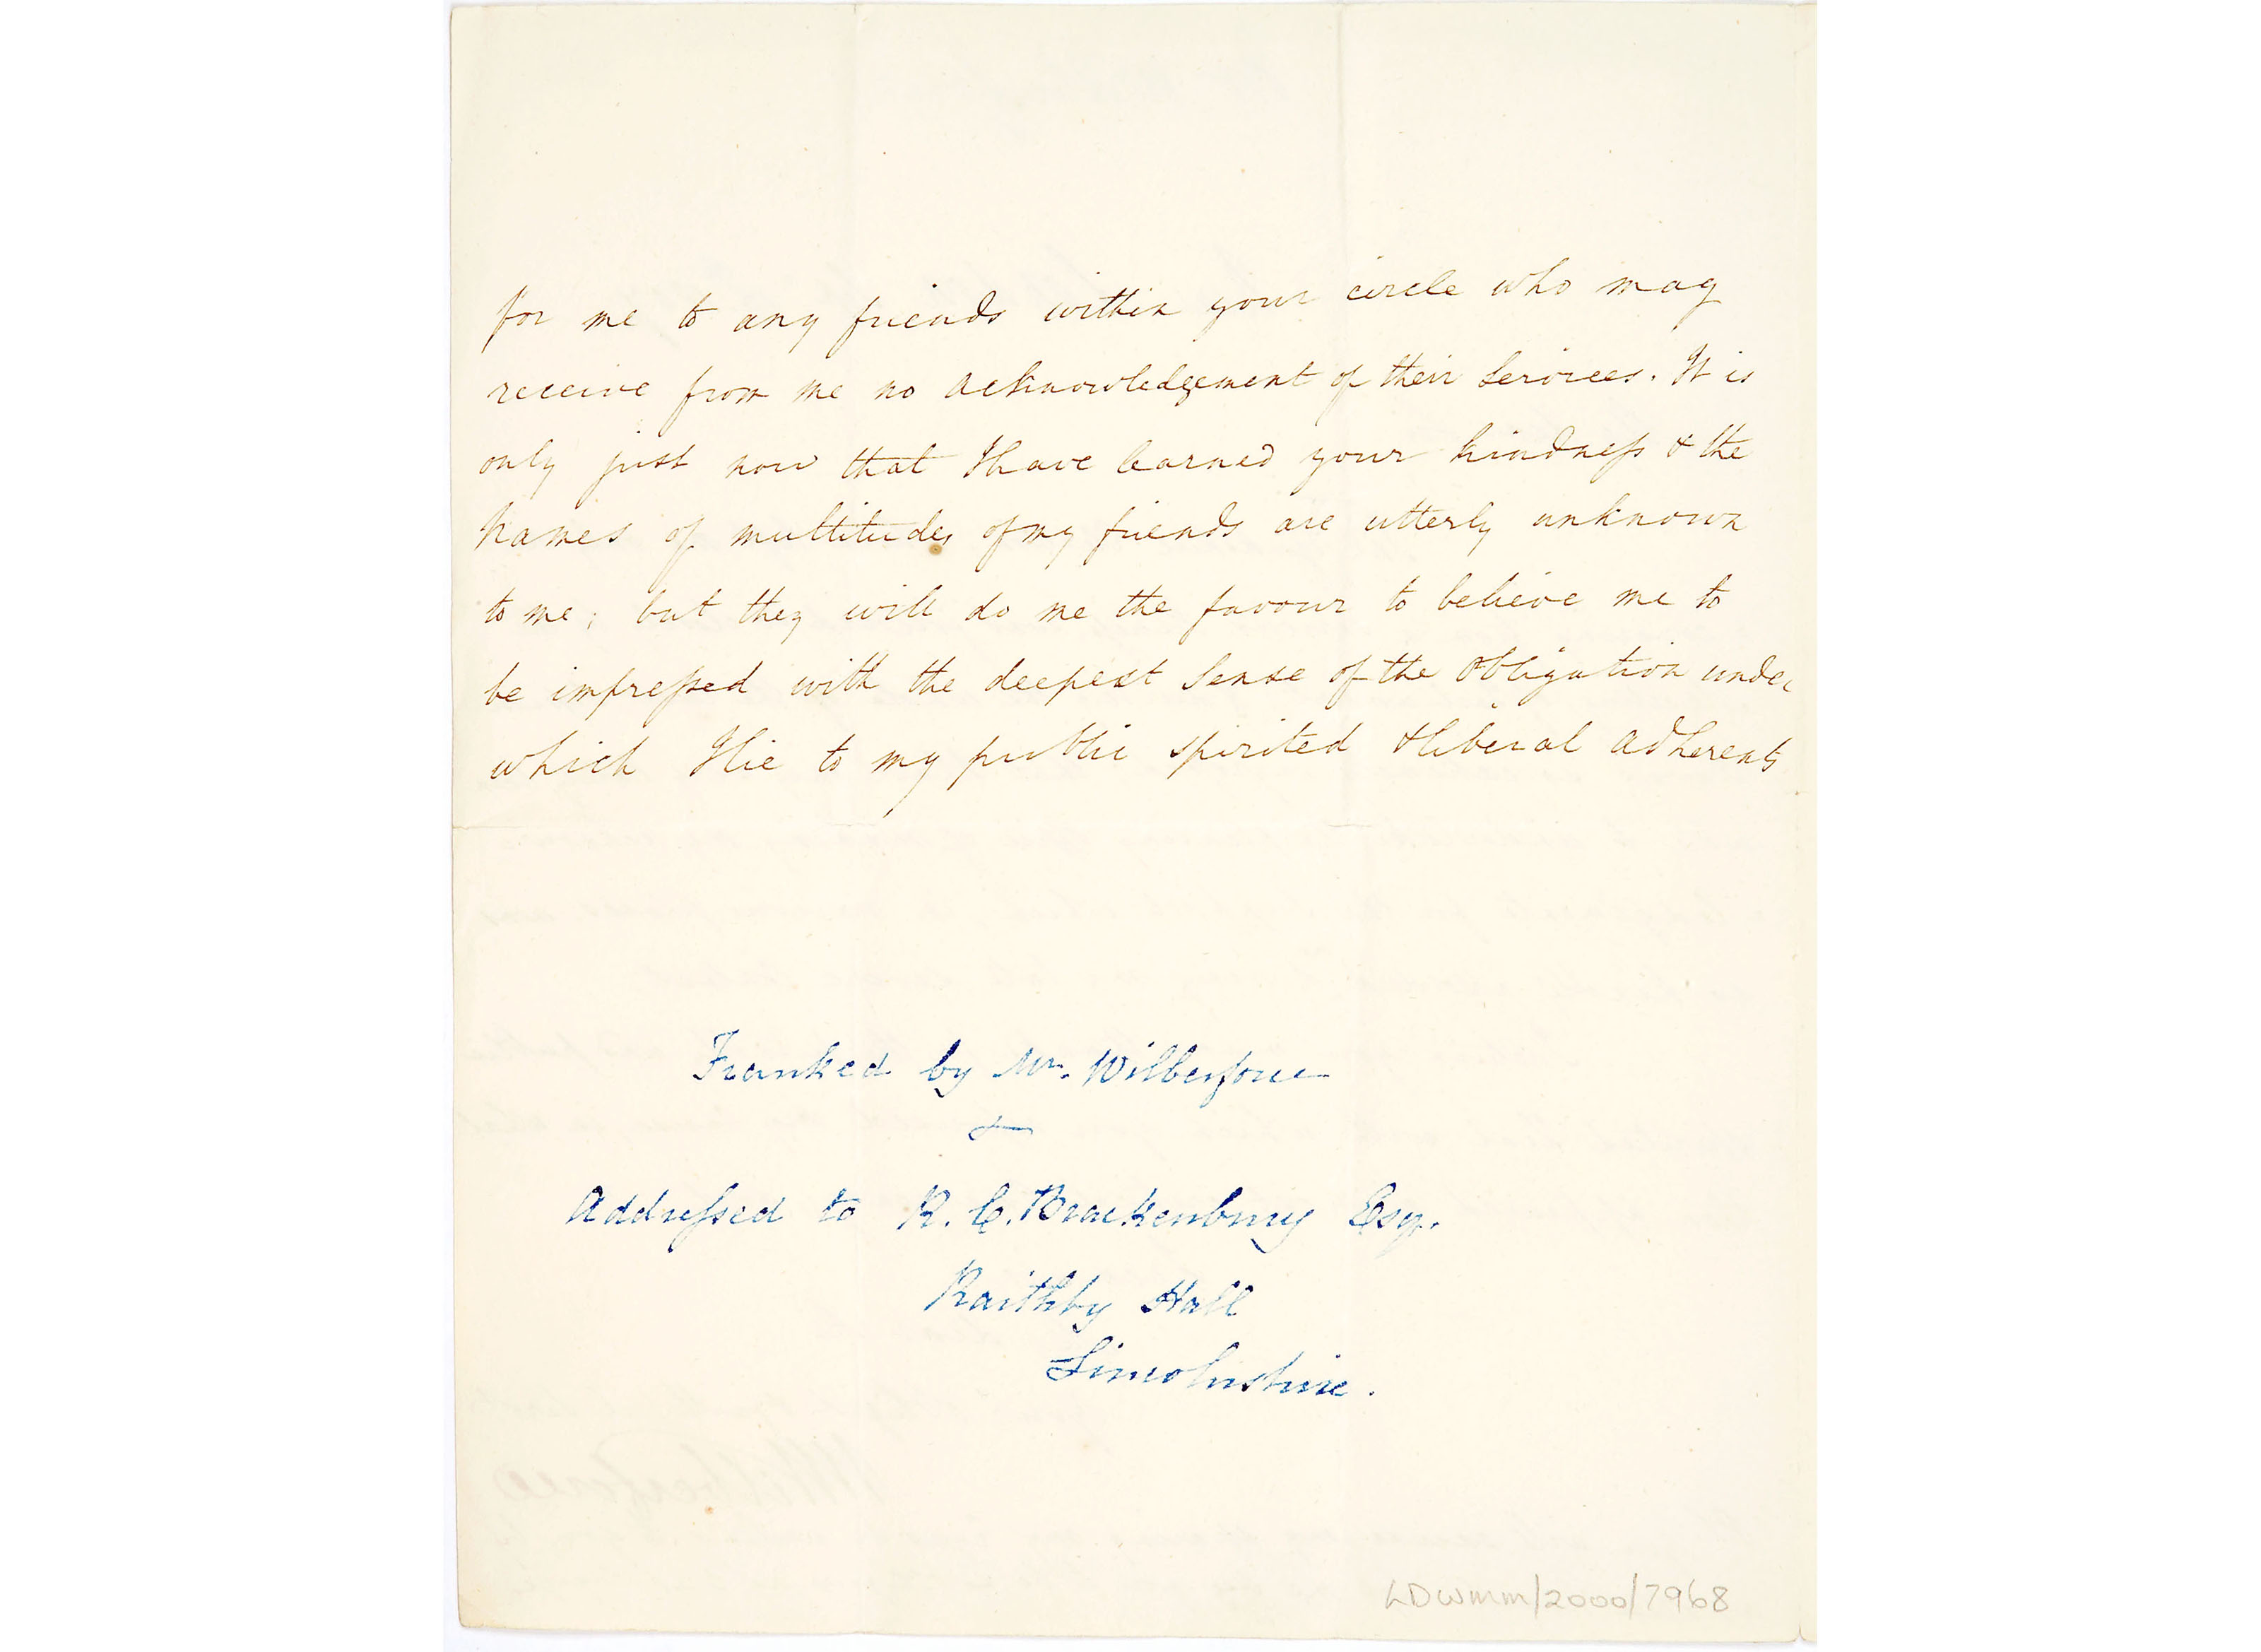 Letter from William Wilberforce to Robert Brackenbury